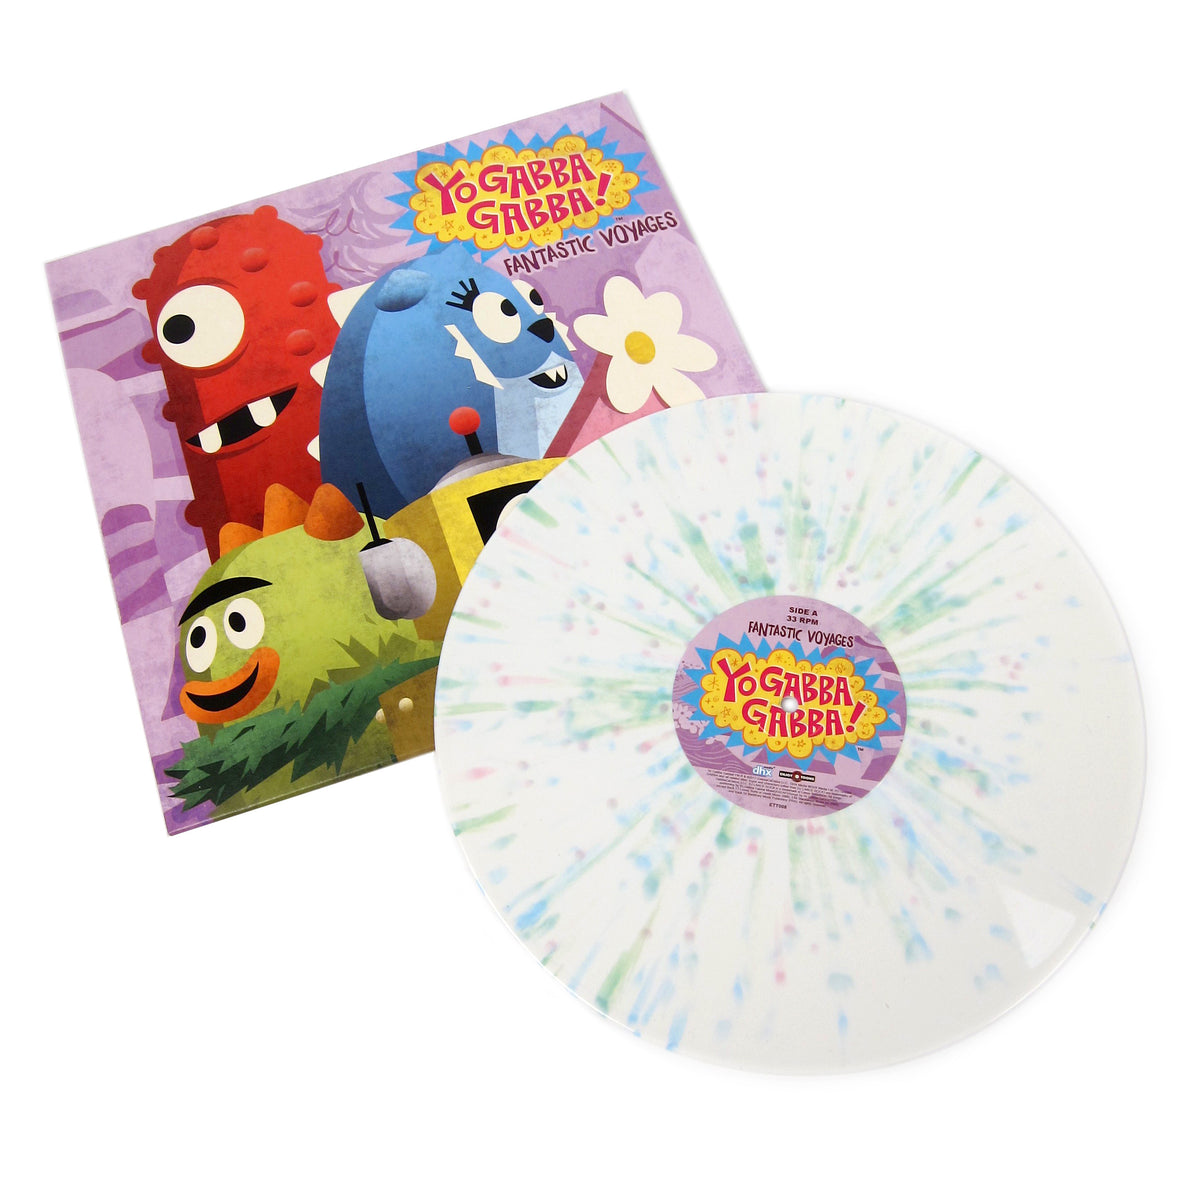 Yo Gabba Gabba: Fantastic Voyages (White Splatter Colored Vinyl) Vinyl LP - TTL Exclusive